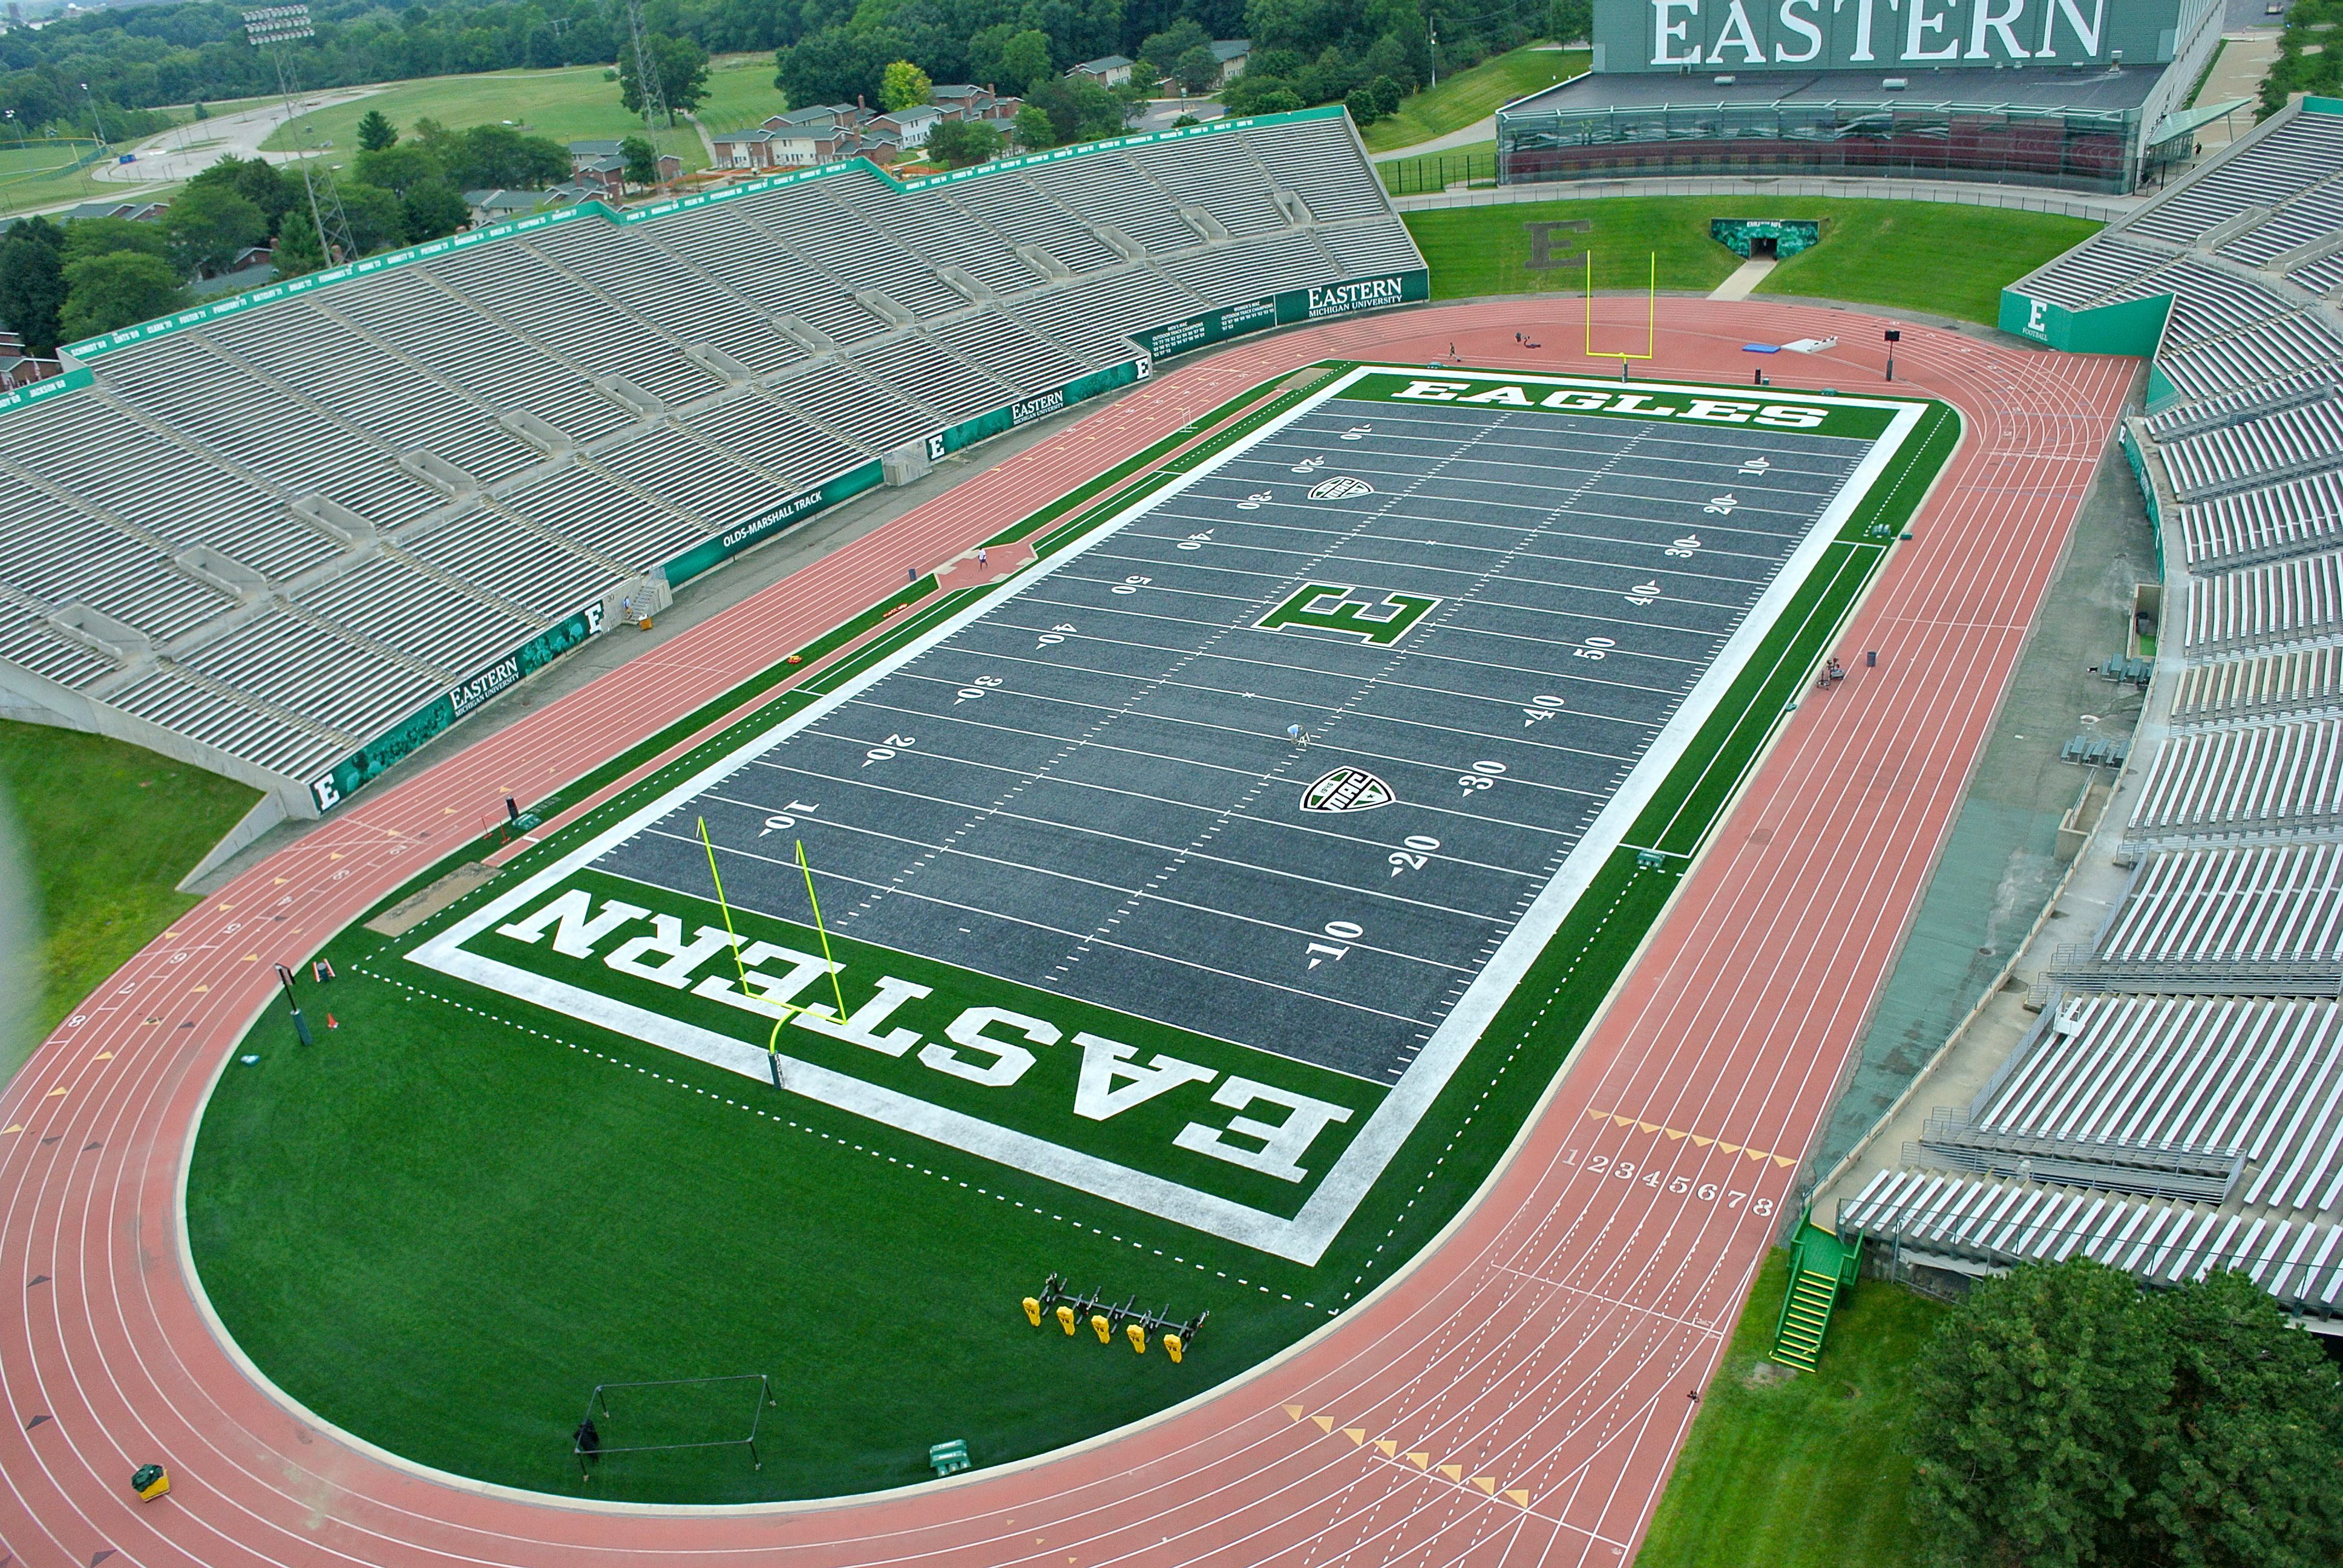 """Eastern Michigan will become the fourth Mid-American Conference school with women's lacrosse, joining Central Michigan, Kent State and Akron, which is adding the sport in 2020. Detroit Mercy and Youngstown State will join as """"affiliate"""" members."""